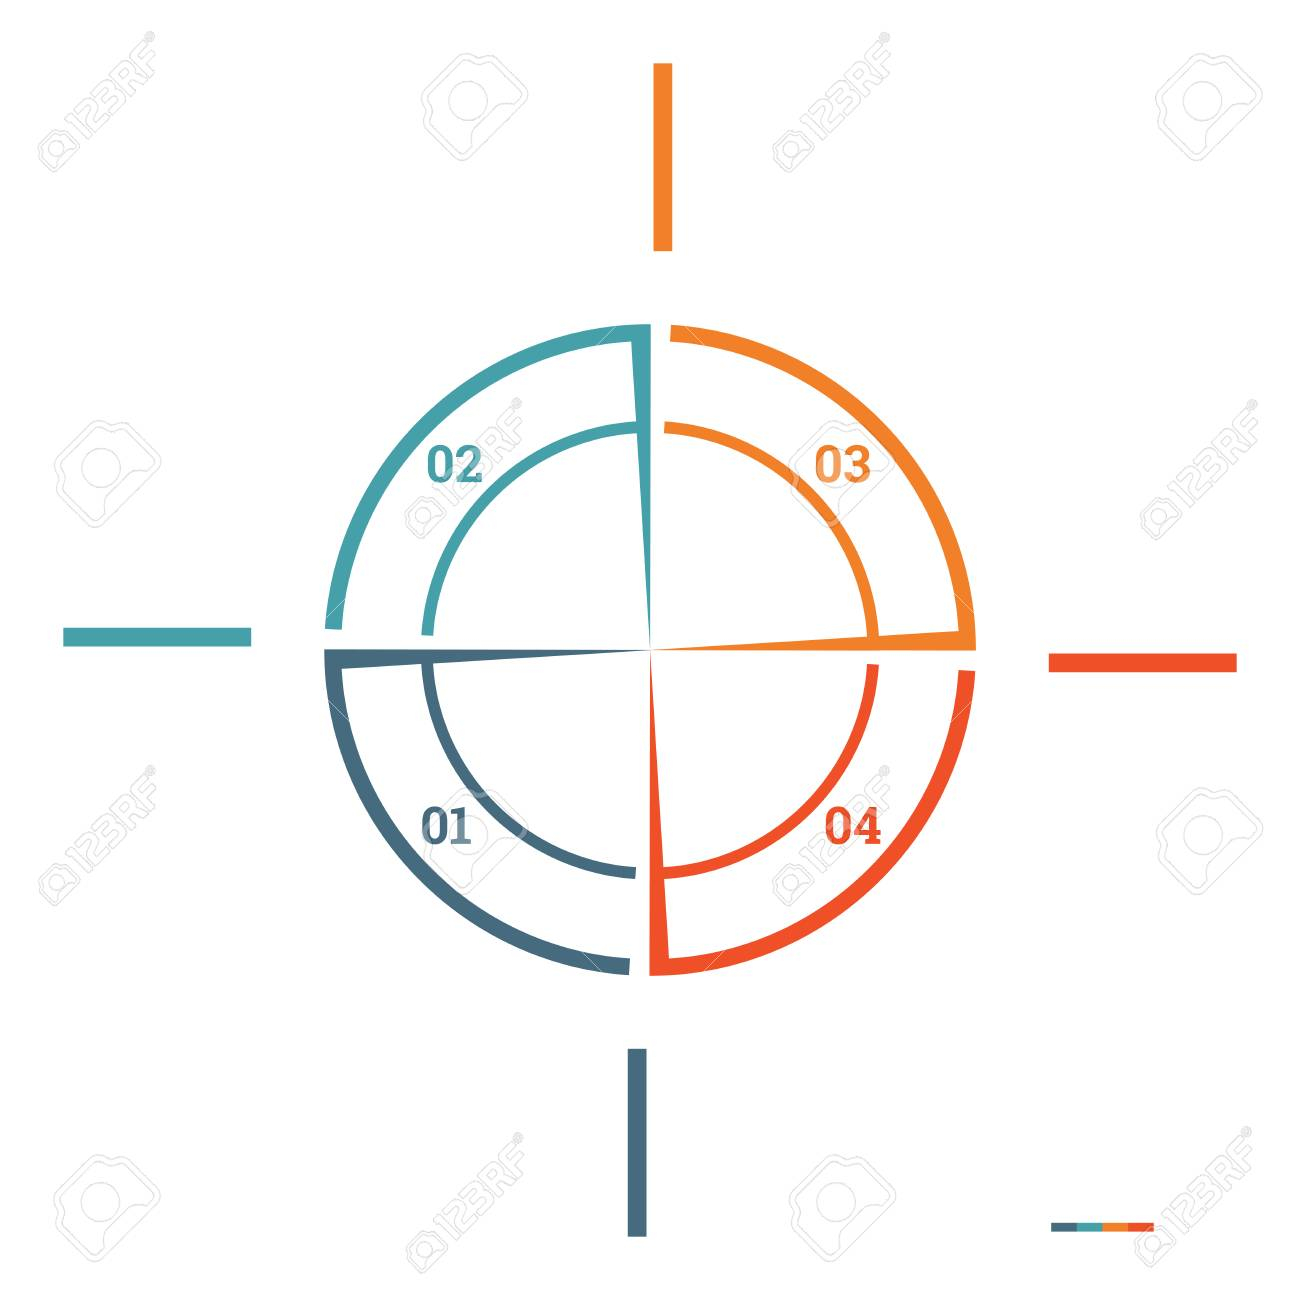 infographic pie chart template colourful circle from lines with